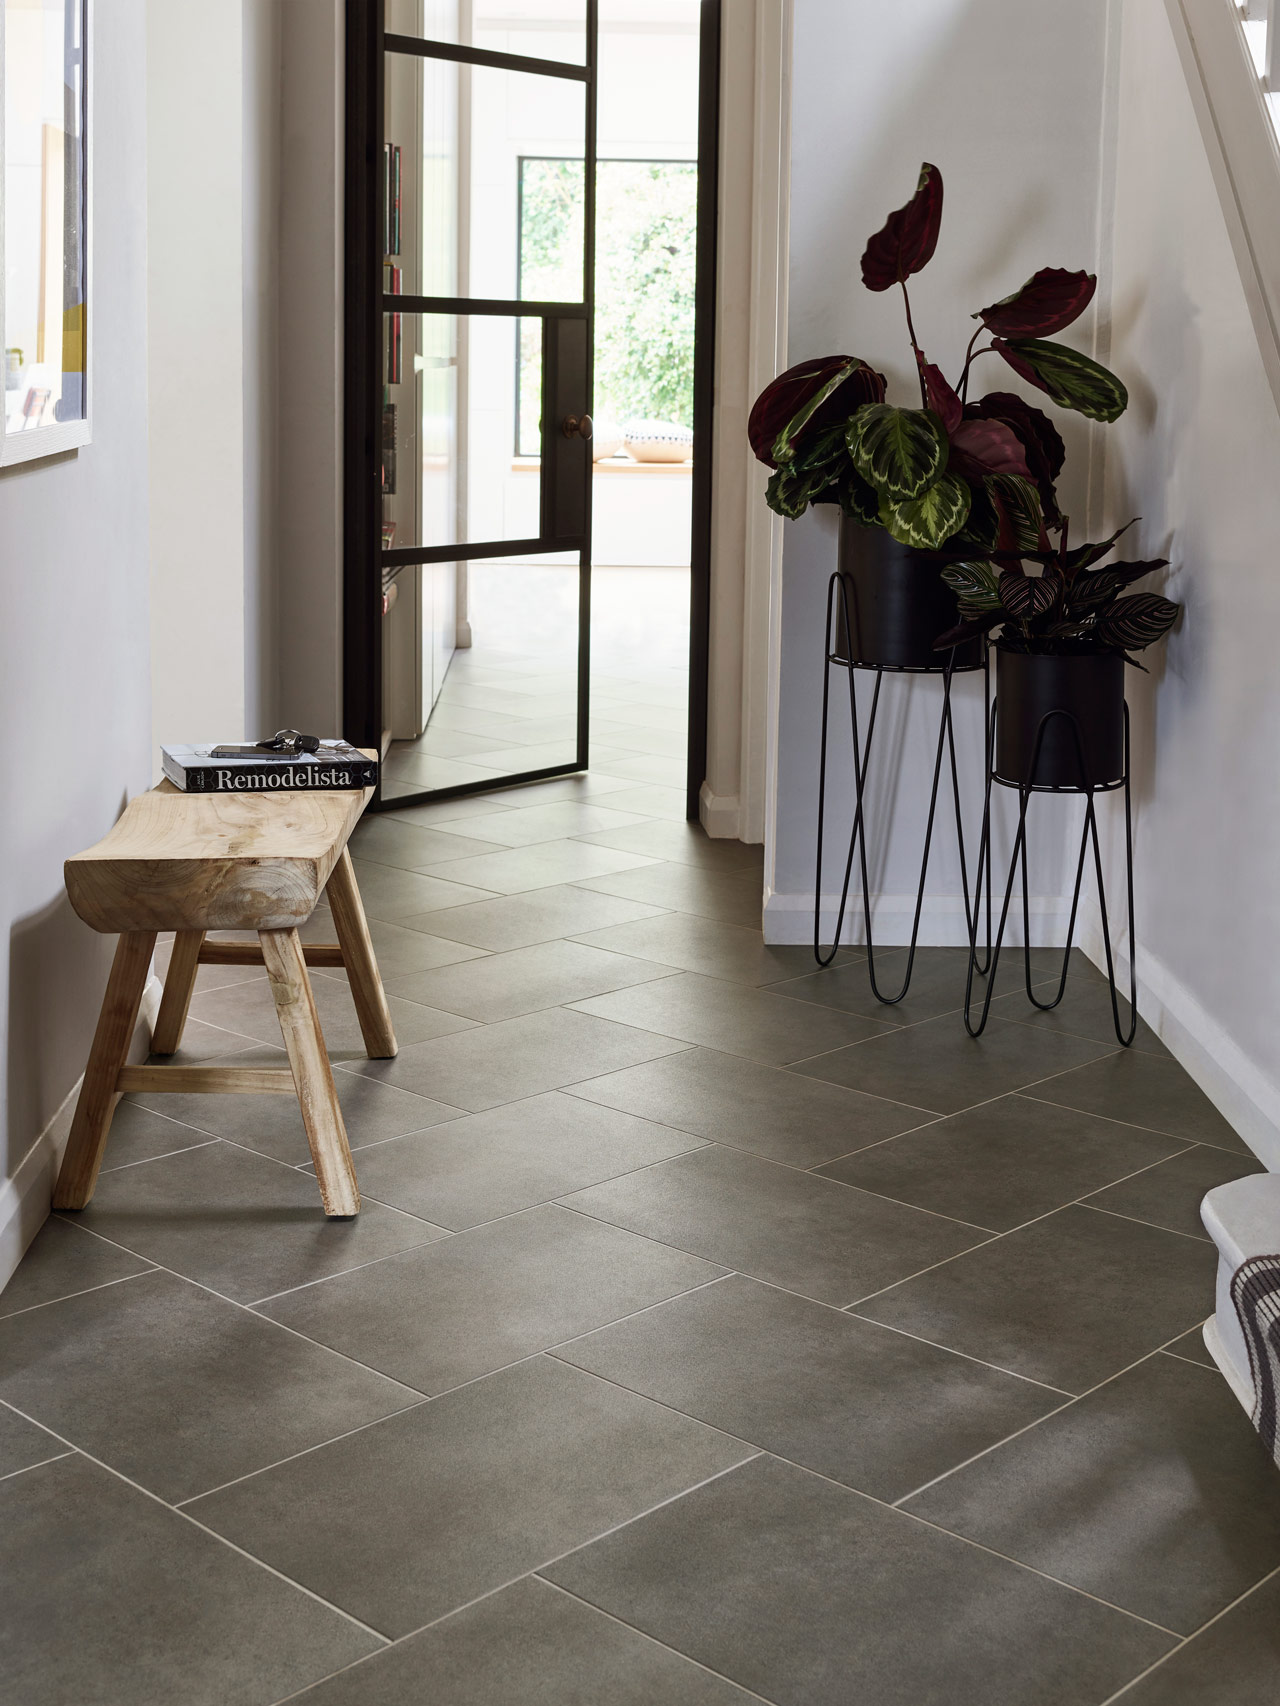 Amtico Spacia Ceramic Sable SS5S3593 with Concrete Pale stripping in Herringbone Tile laying pattern